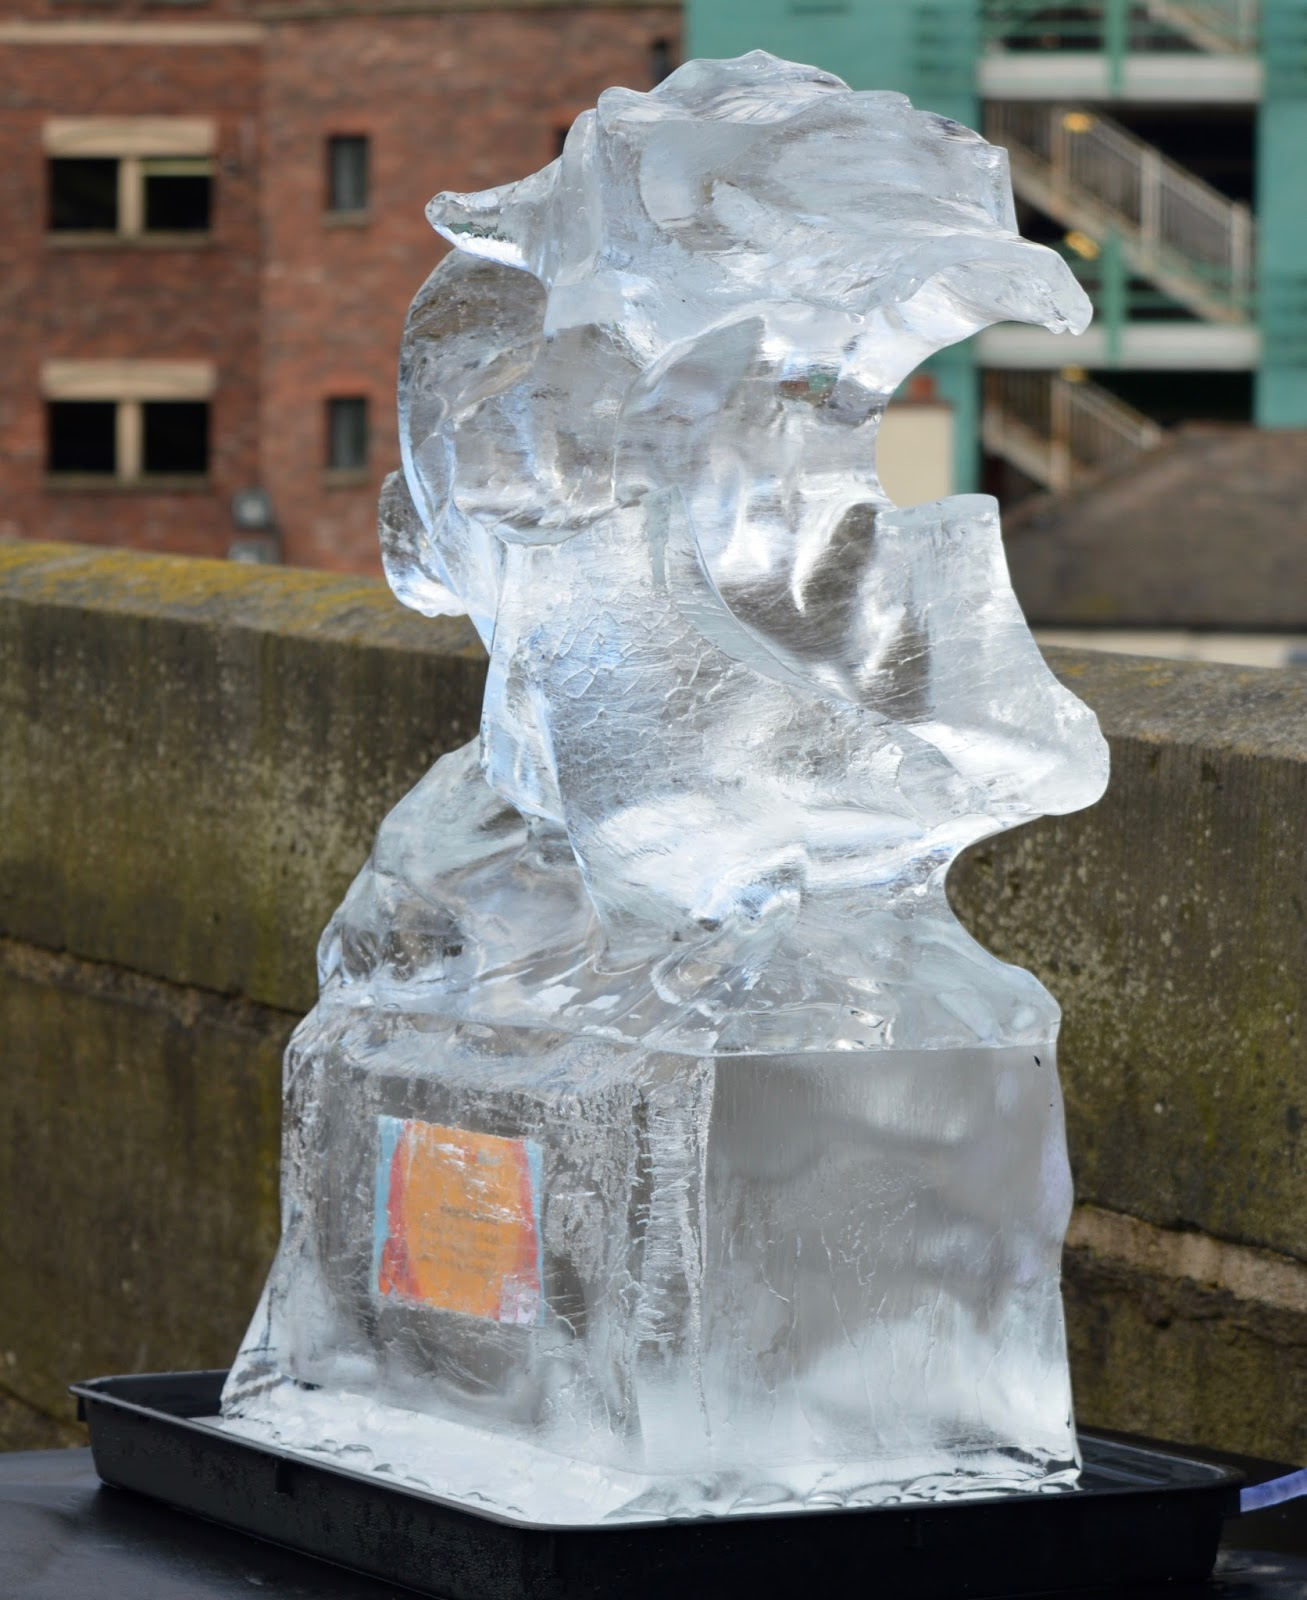 Fire and Ice Durham 2017 | Photographs & Top Tips for 2018 - melted ice sculpture